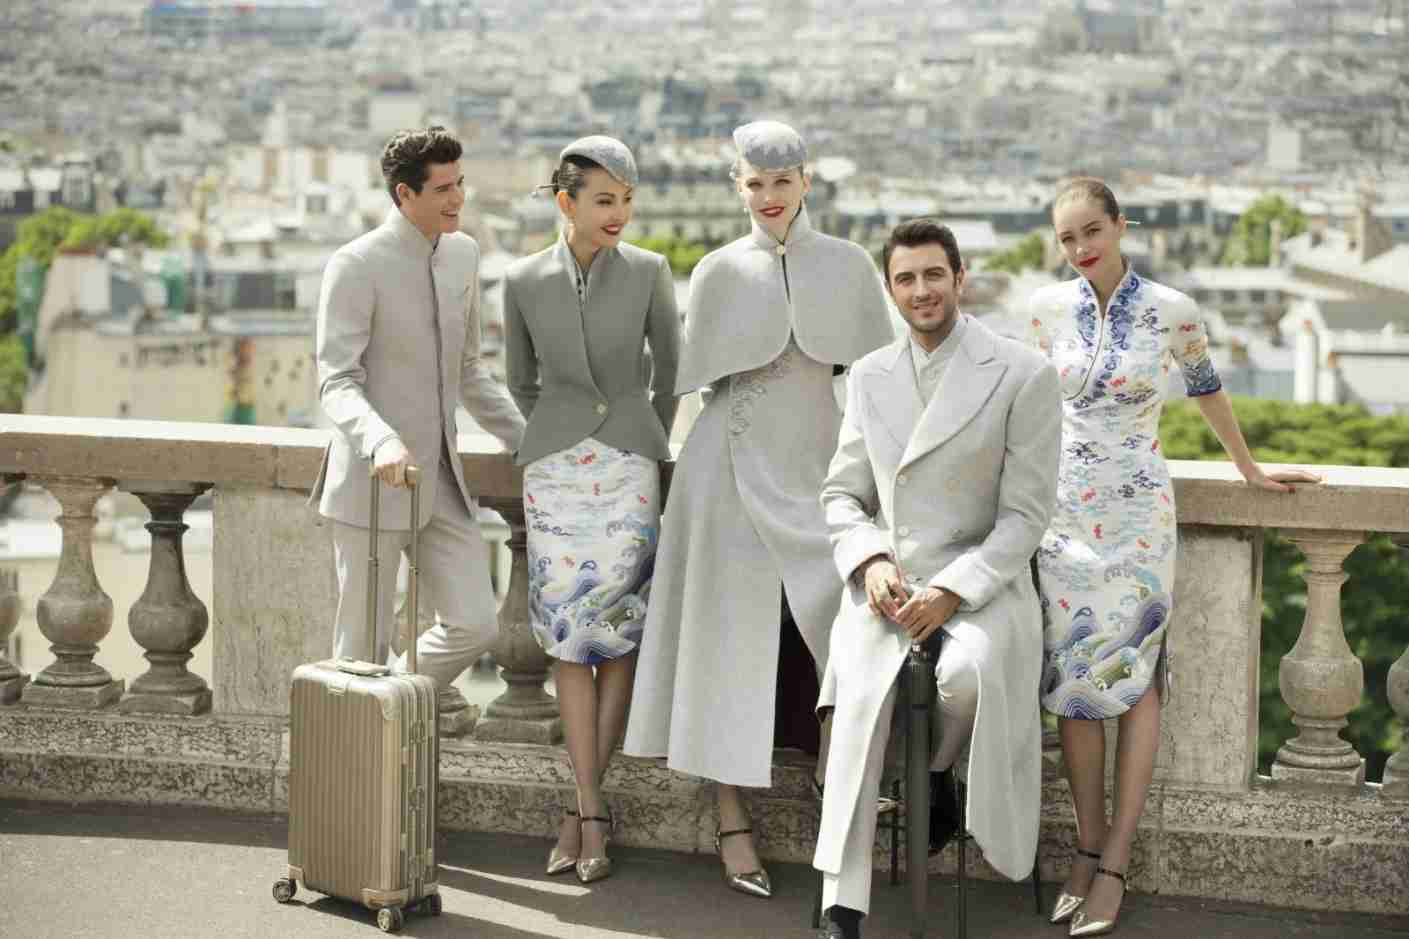 Yes, these are airline uniforms! Photo courtesy of Hainan Airlines.